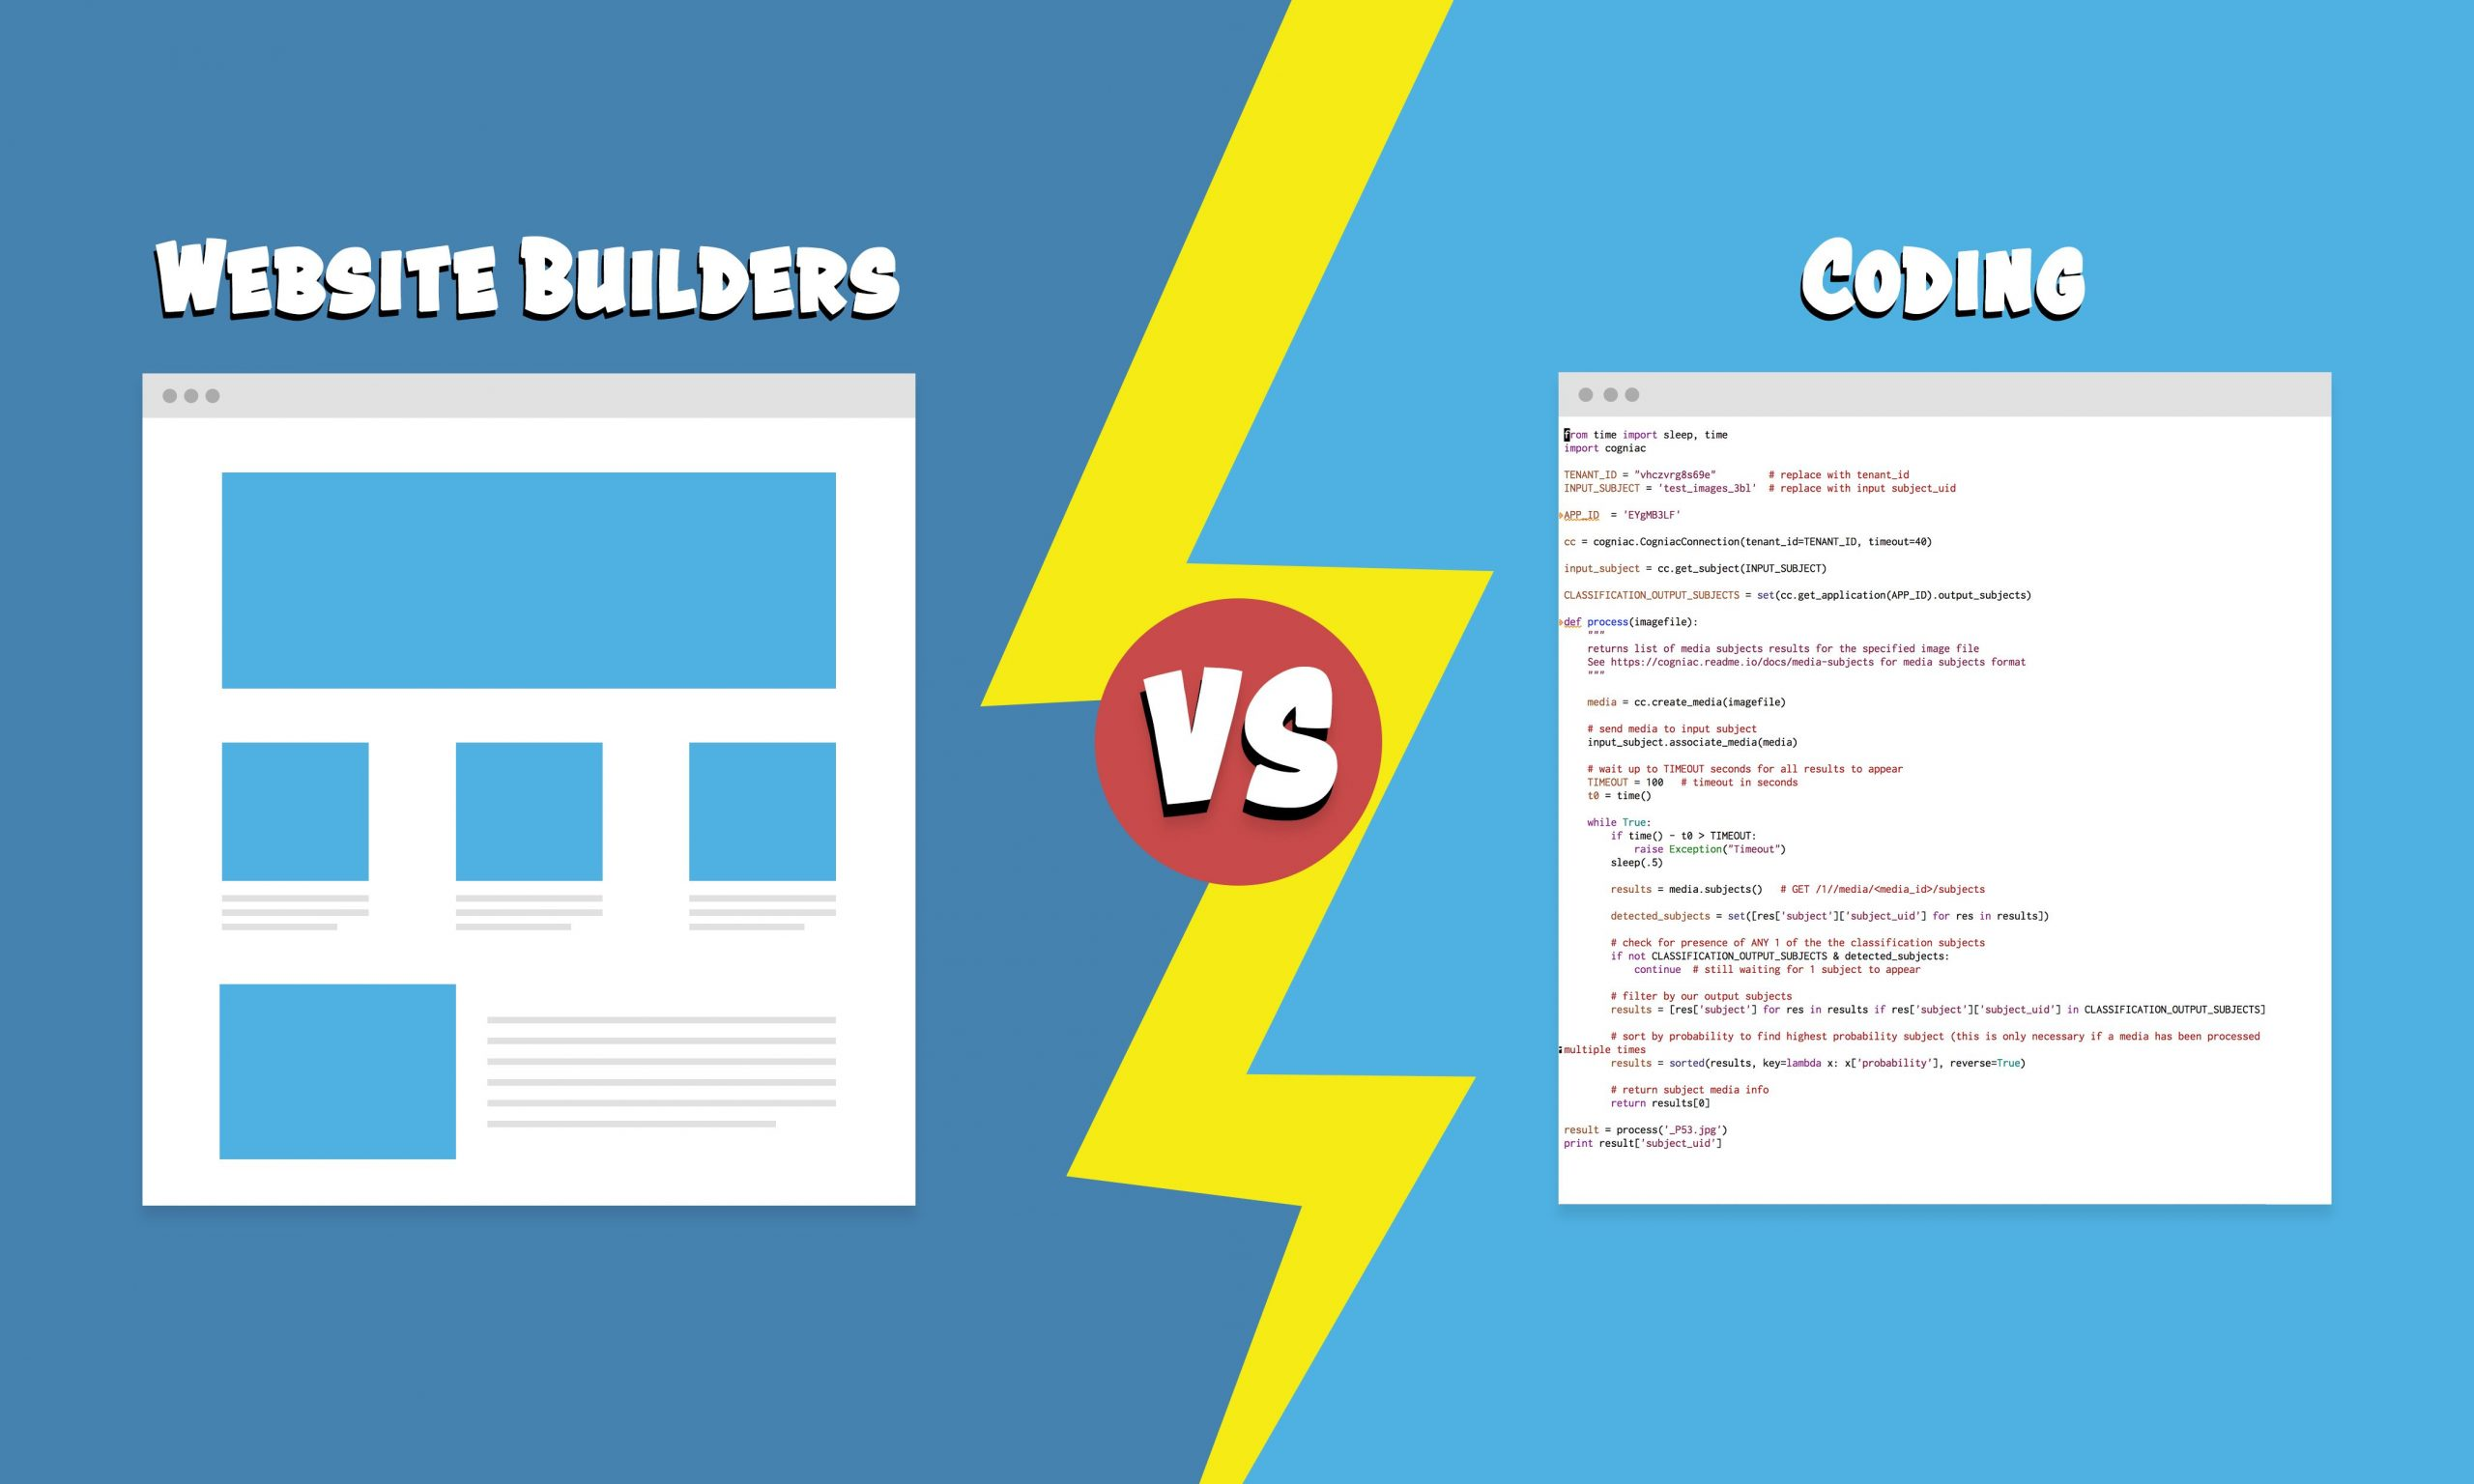 Website builders vs coding